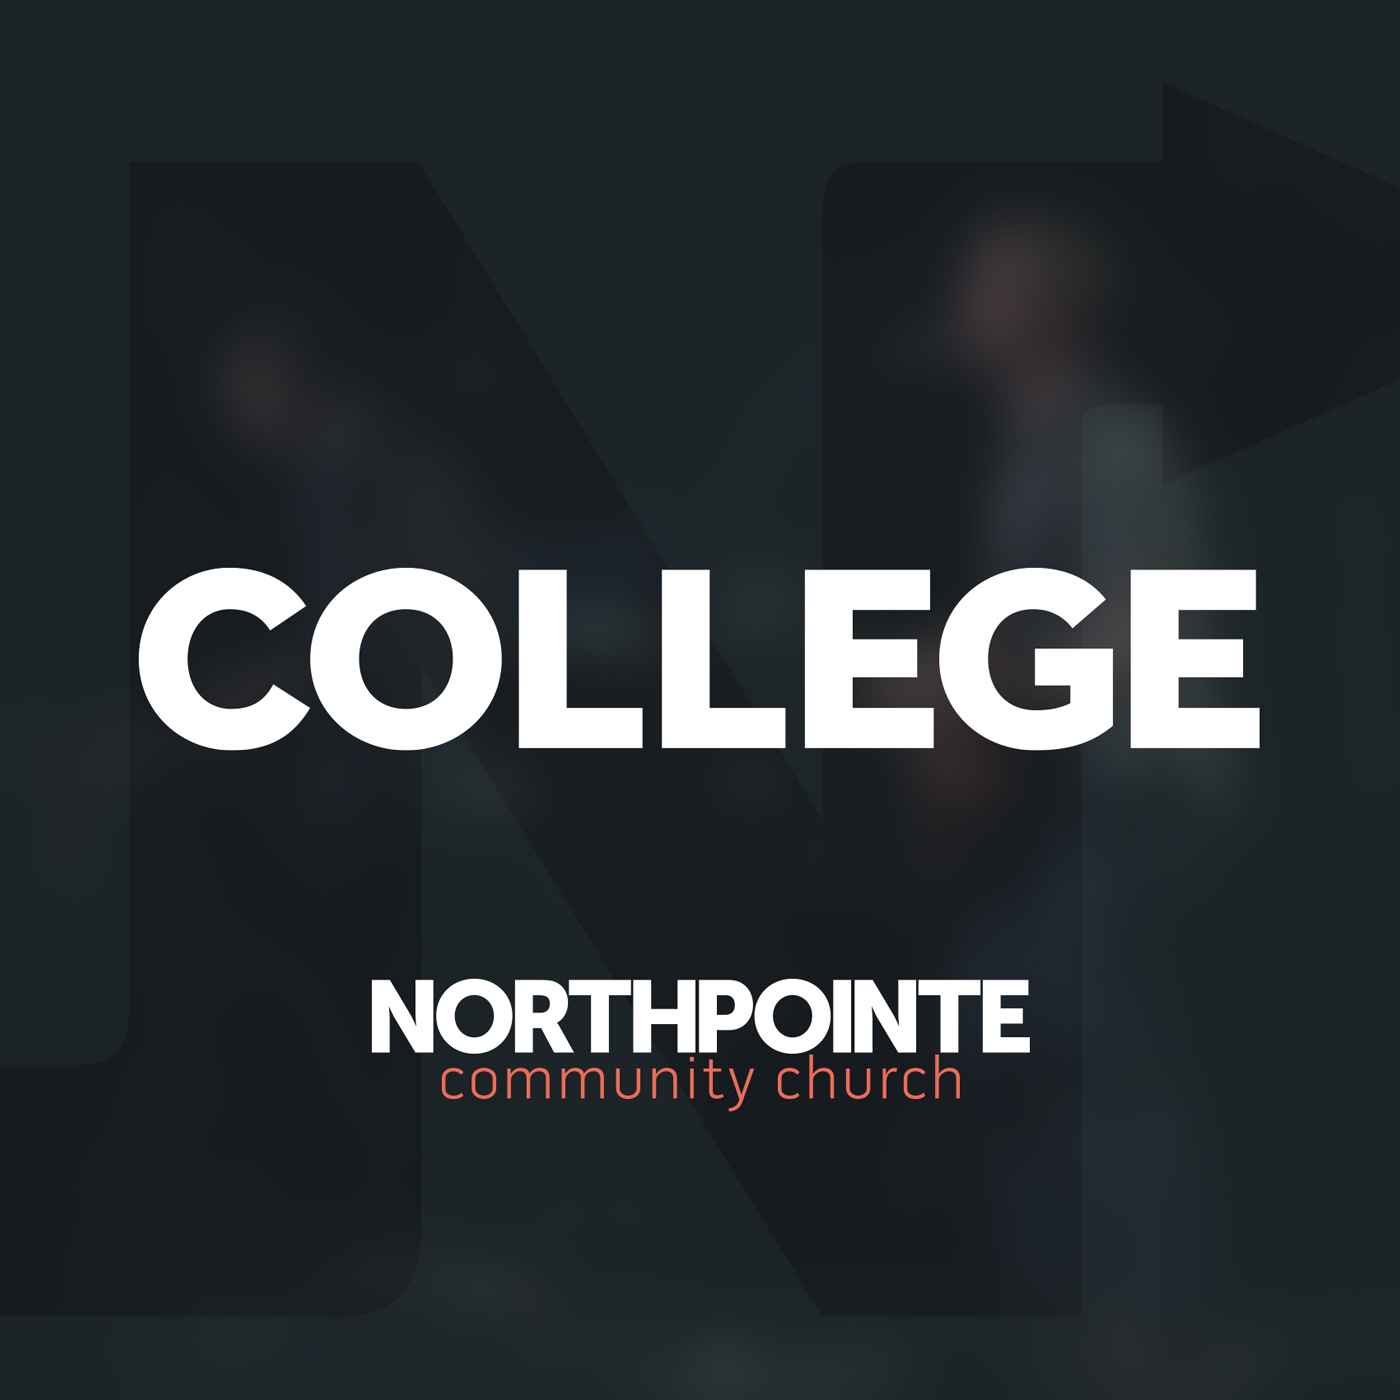 College At Northpointe